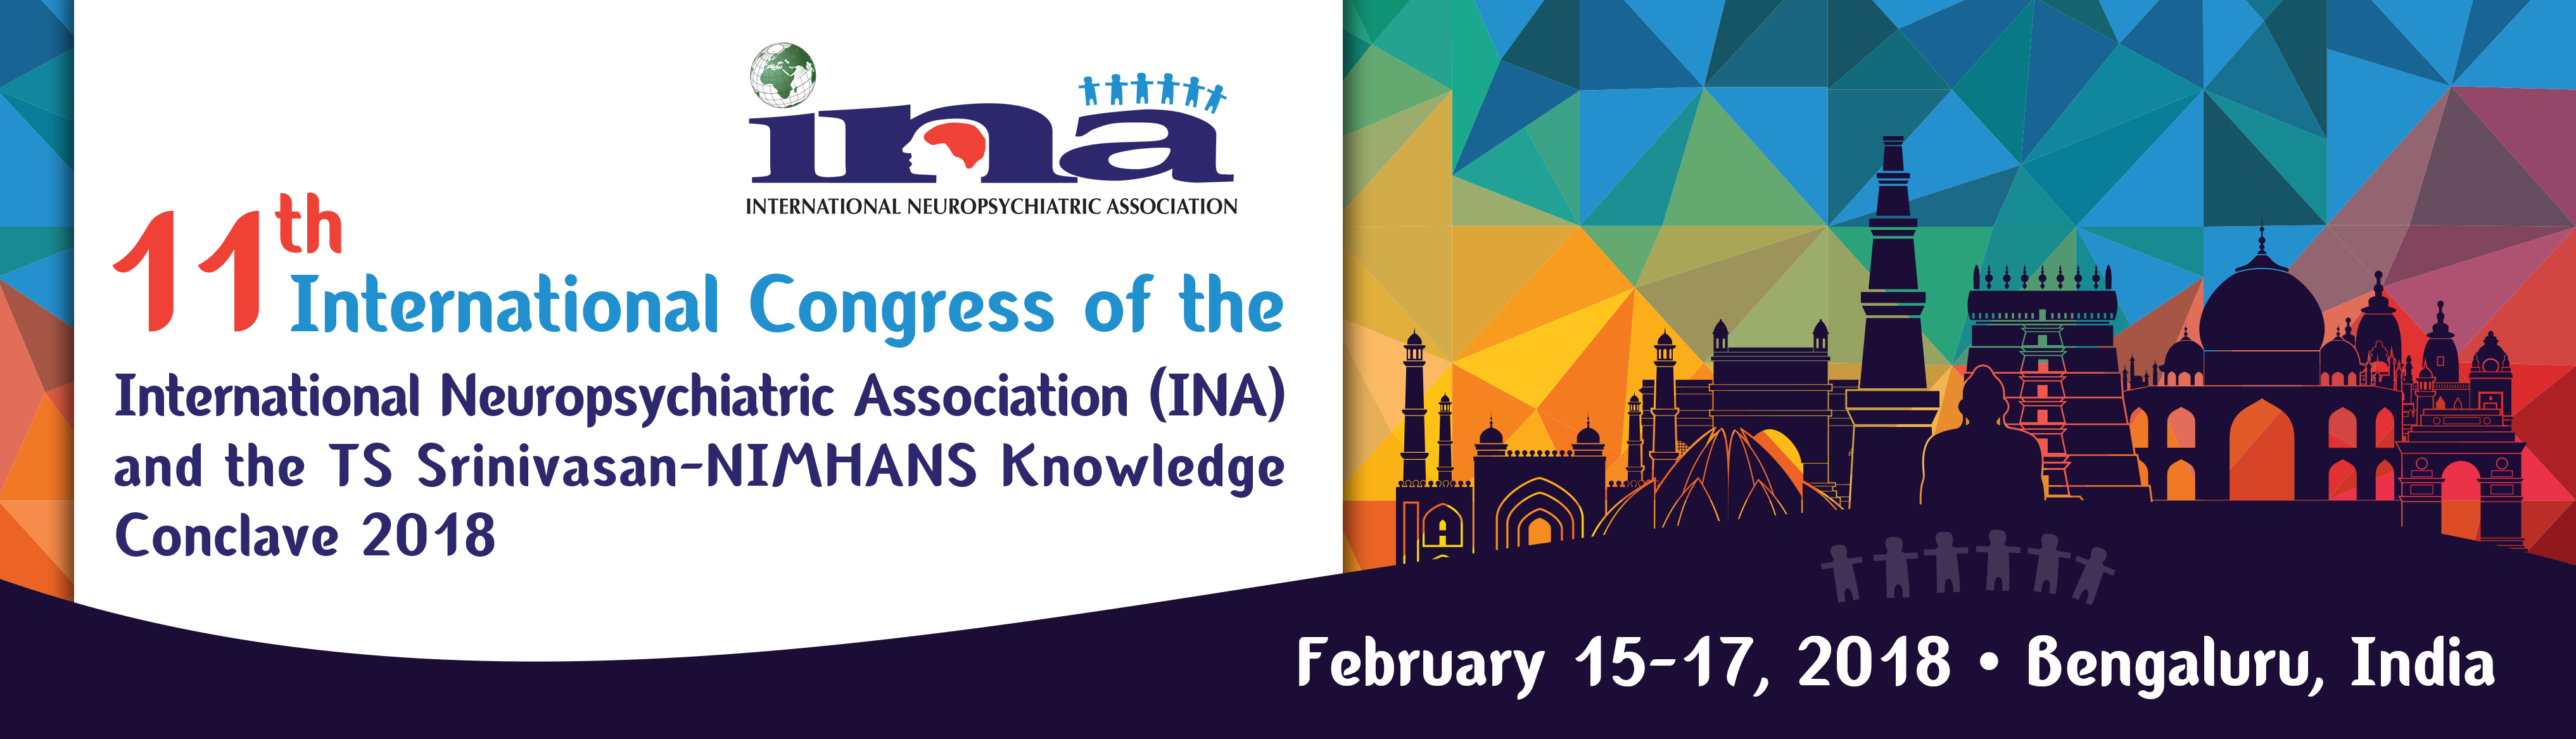 INA Conference updated with new name.jpg